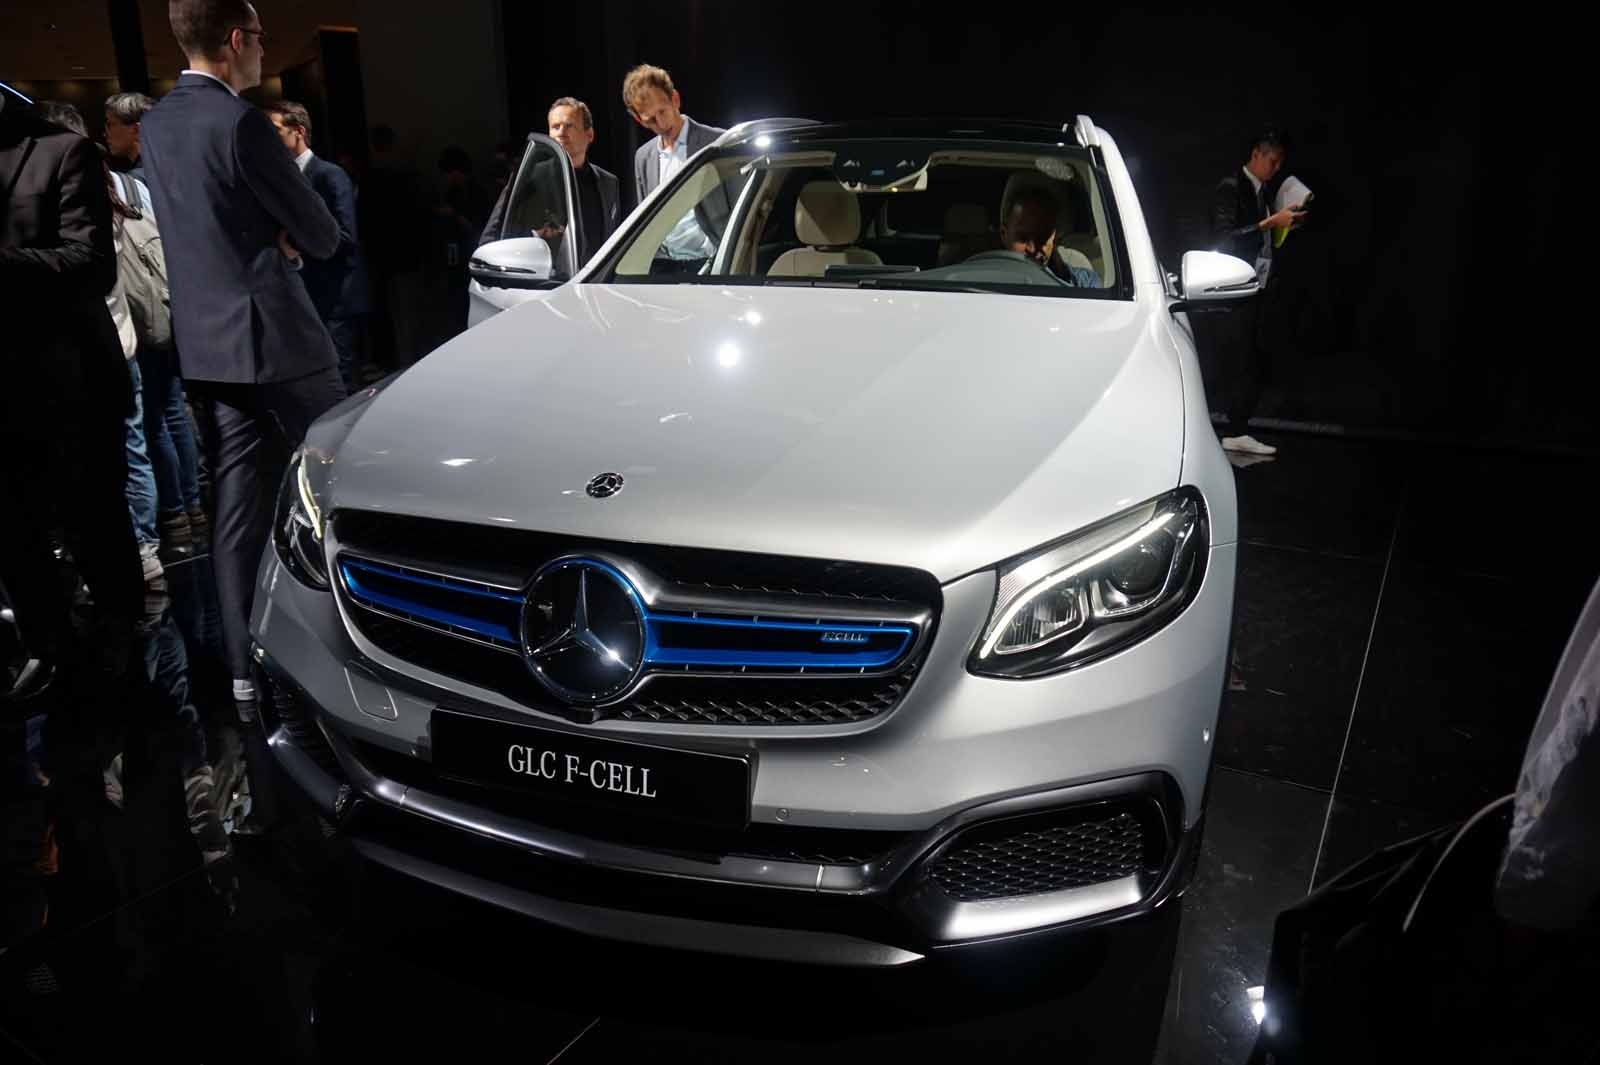 http://www.autoguide.com/blog/wp-content/gallery/mercedes-glc-f-cell/Mercedes-Benz-GLC-F-Cell-Live-Photos-16.jpg